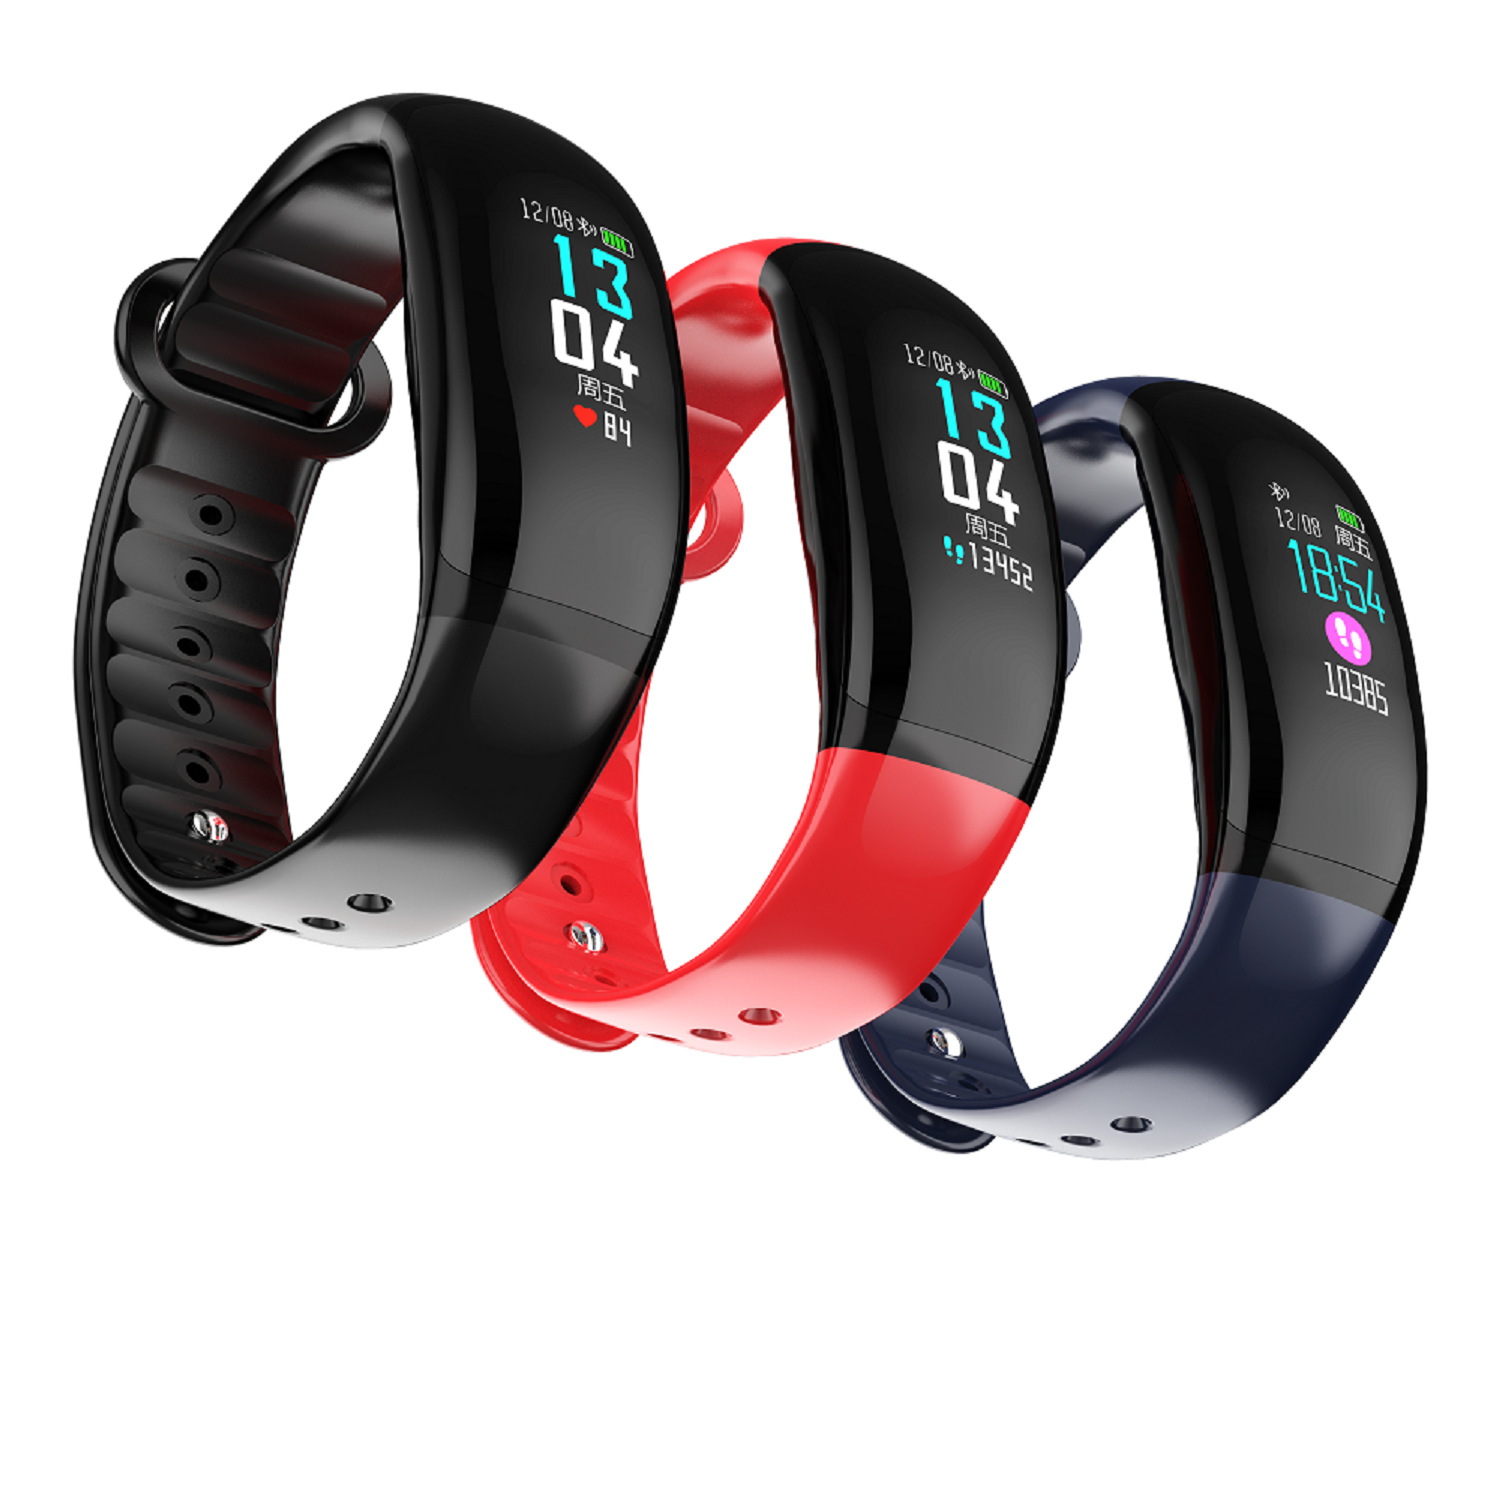 New Arrival B70 SmartBracelet IP67 Waterproof Heart Rate Blood Pressure Oxygen Fitness Tracker Sport Wristband pk T70 SmartWatch